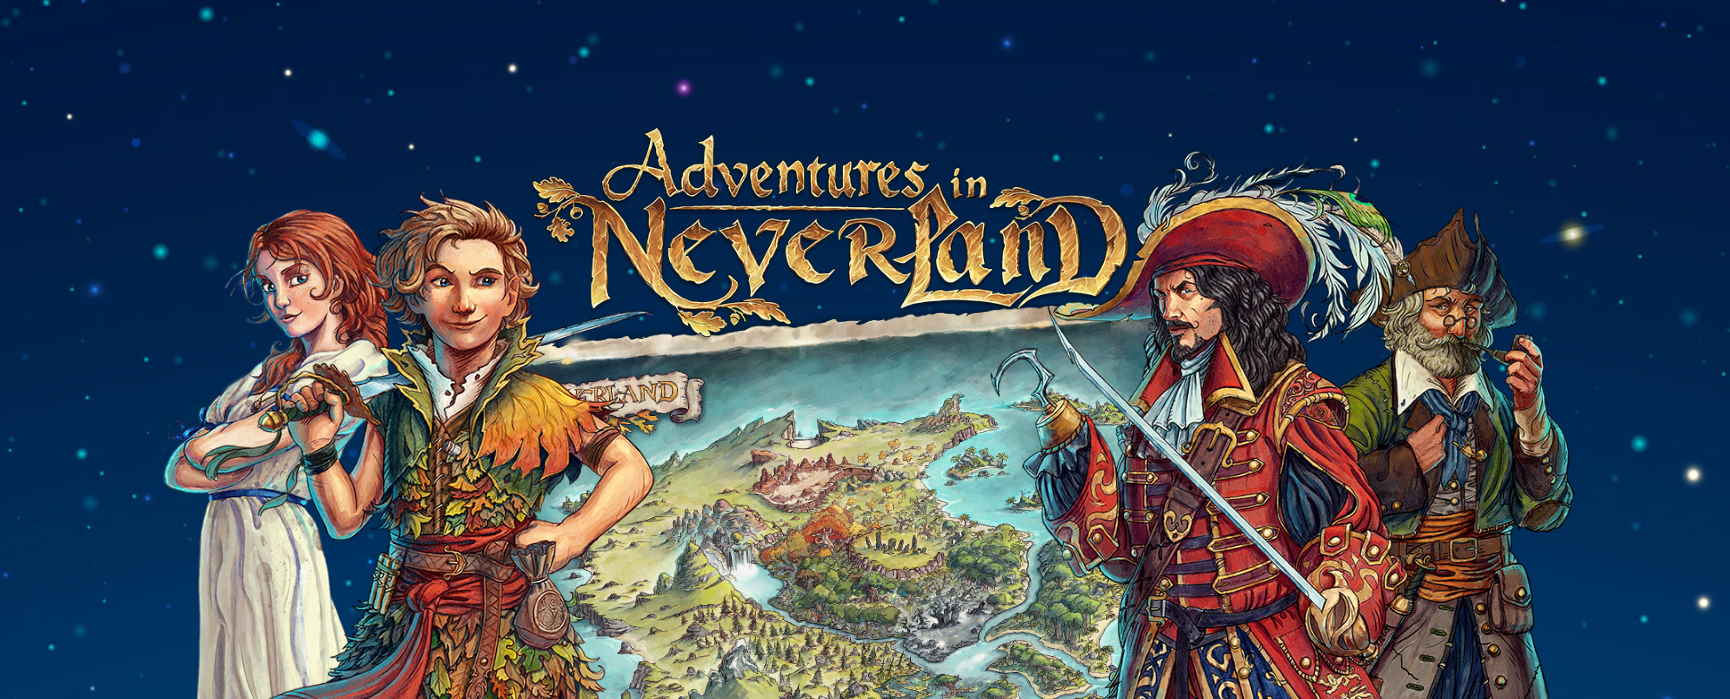 Adventures in Neverland portada